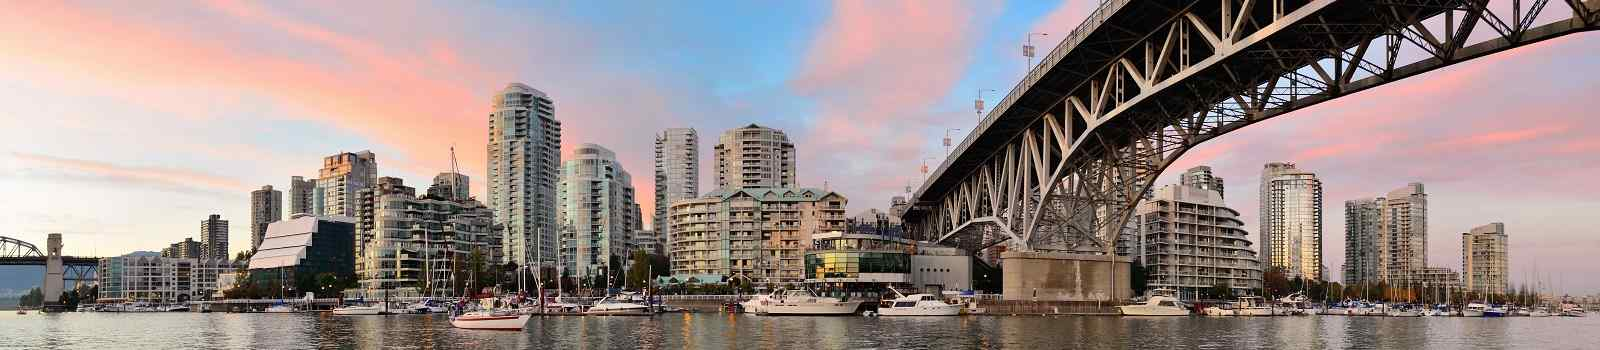 CAD-WEST-TESLA Vancouver False Creek panorama at sunset with bridge and boat 438921508